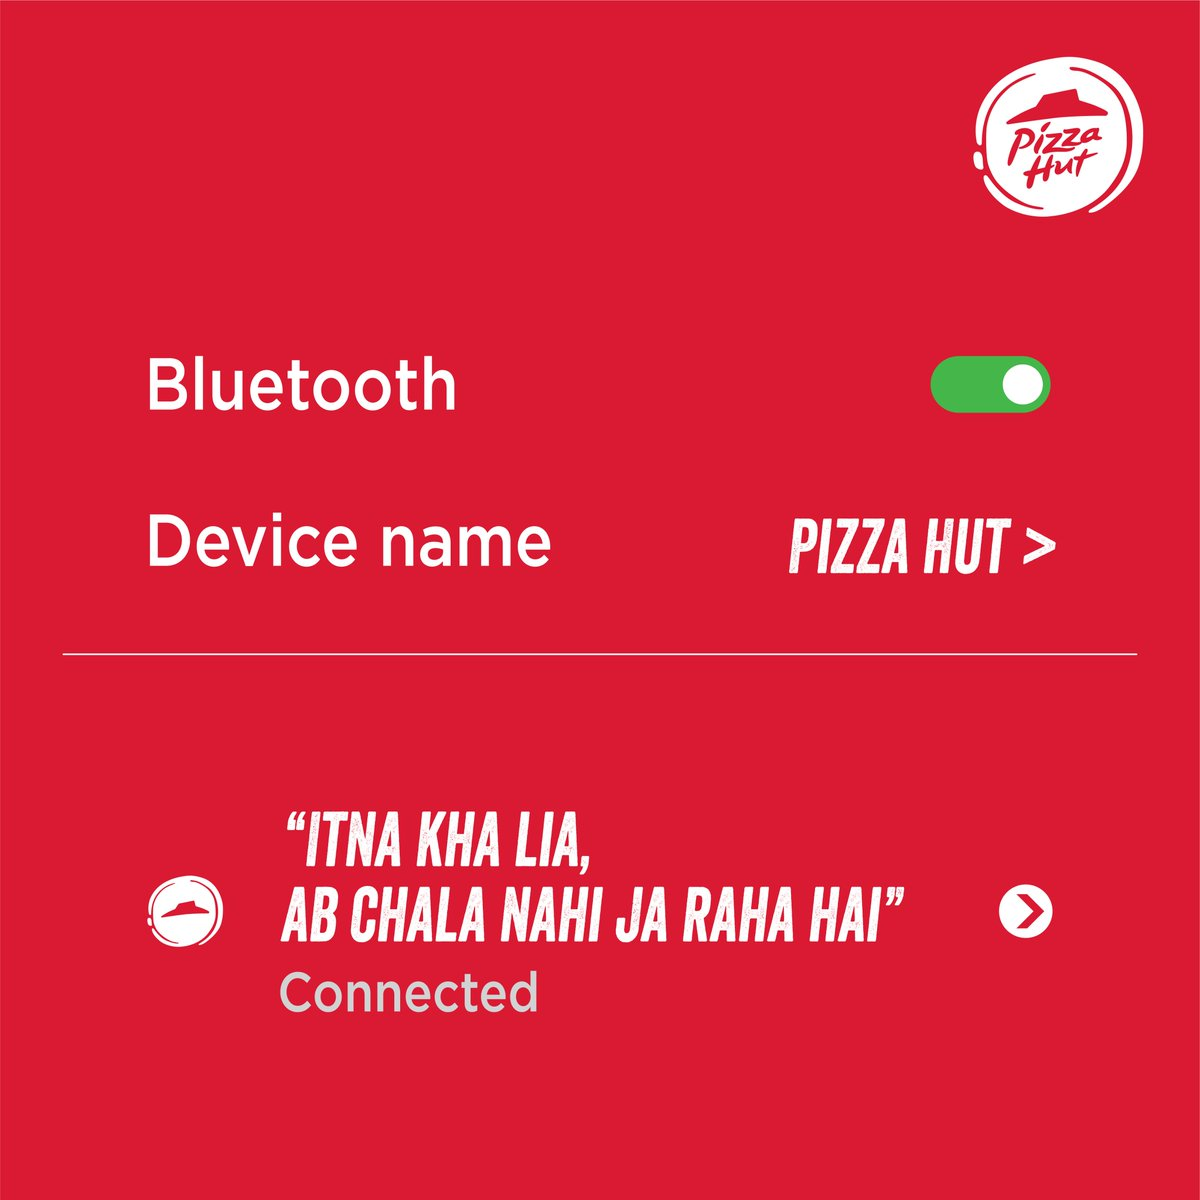 Im so full, I cant eat anymore. Oh, look pizzaaaaaa ConnectedTo PizzaHutIndia https t.co tmh3AUoQNV